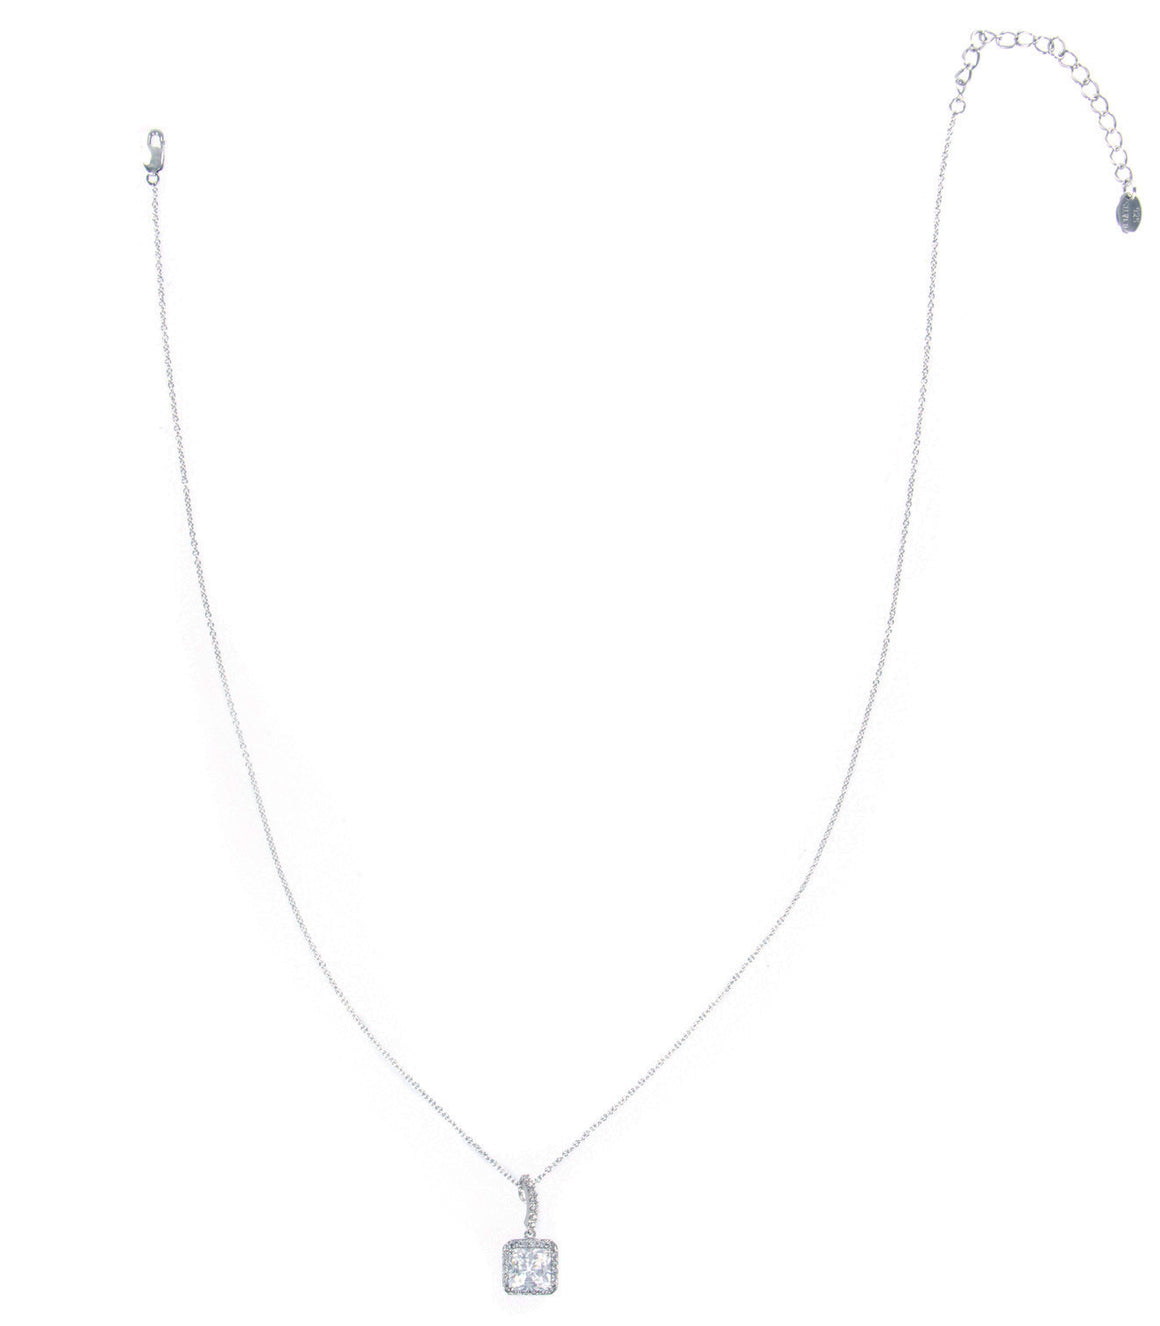 925 sterling silver chain with square cut cubic zirconia pendant